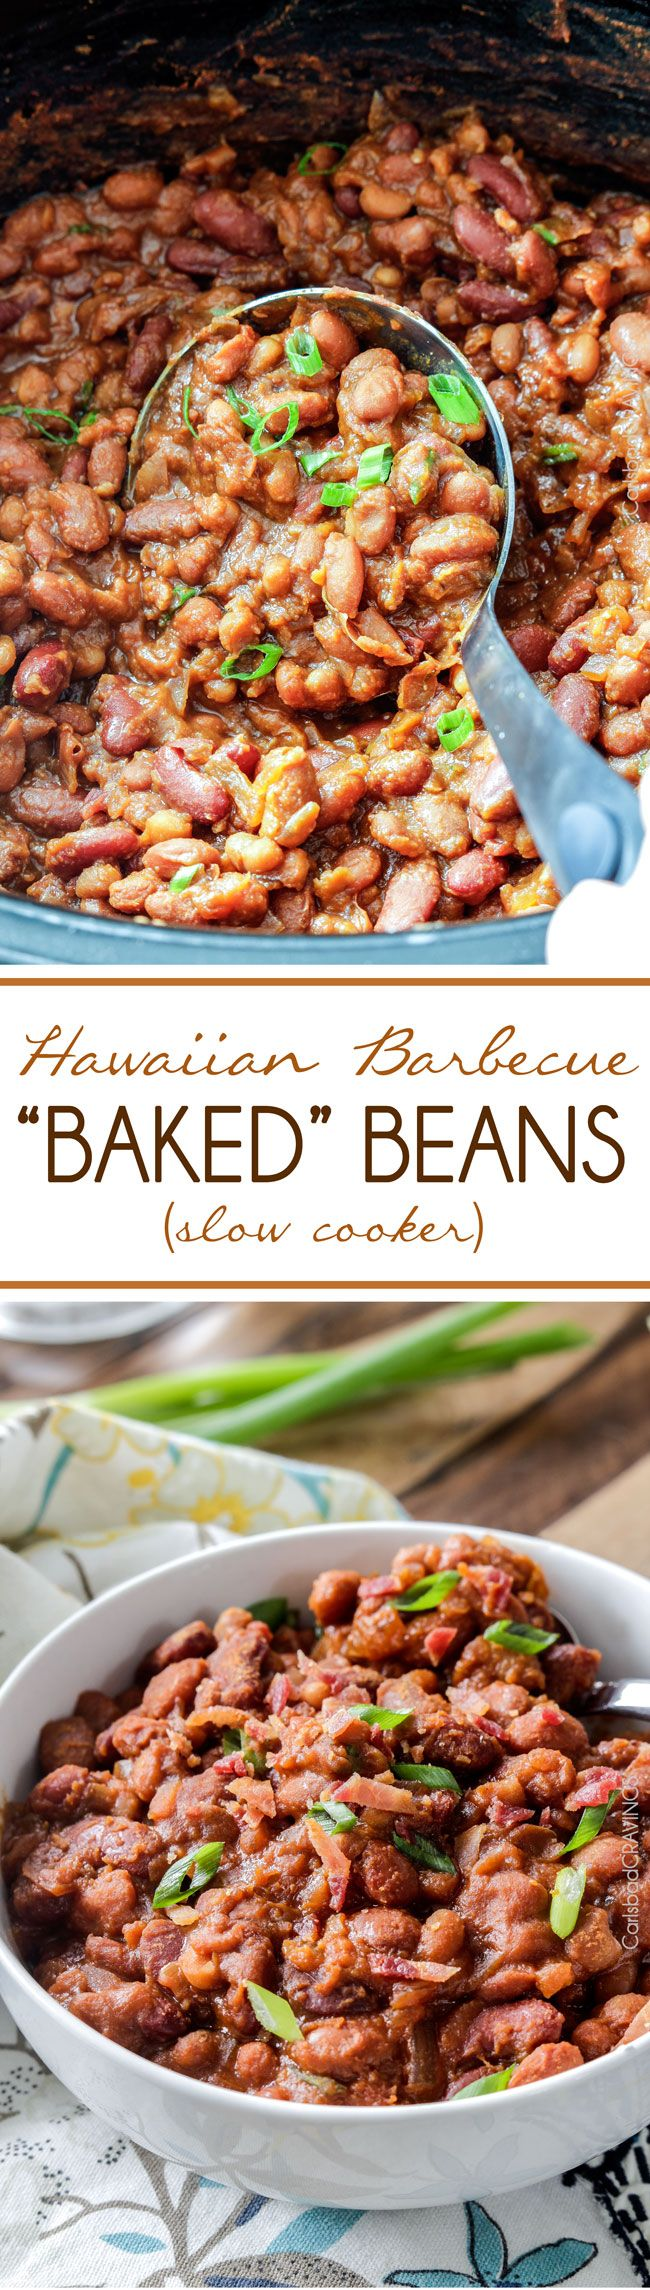 "Slow Cooker Hawaiian Barbecue ""Baked"" Beans simmered in a pineapple infused barbecue bath enlivened with just the right kick of Cajun spices"